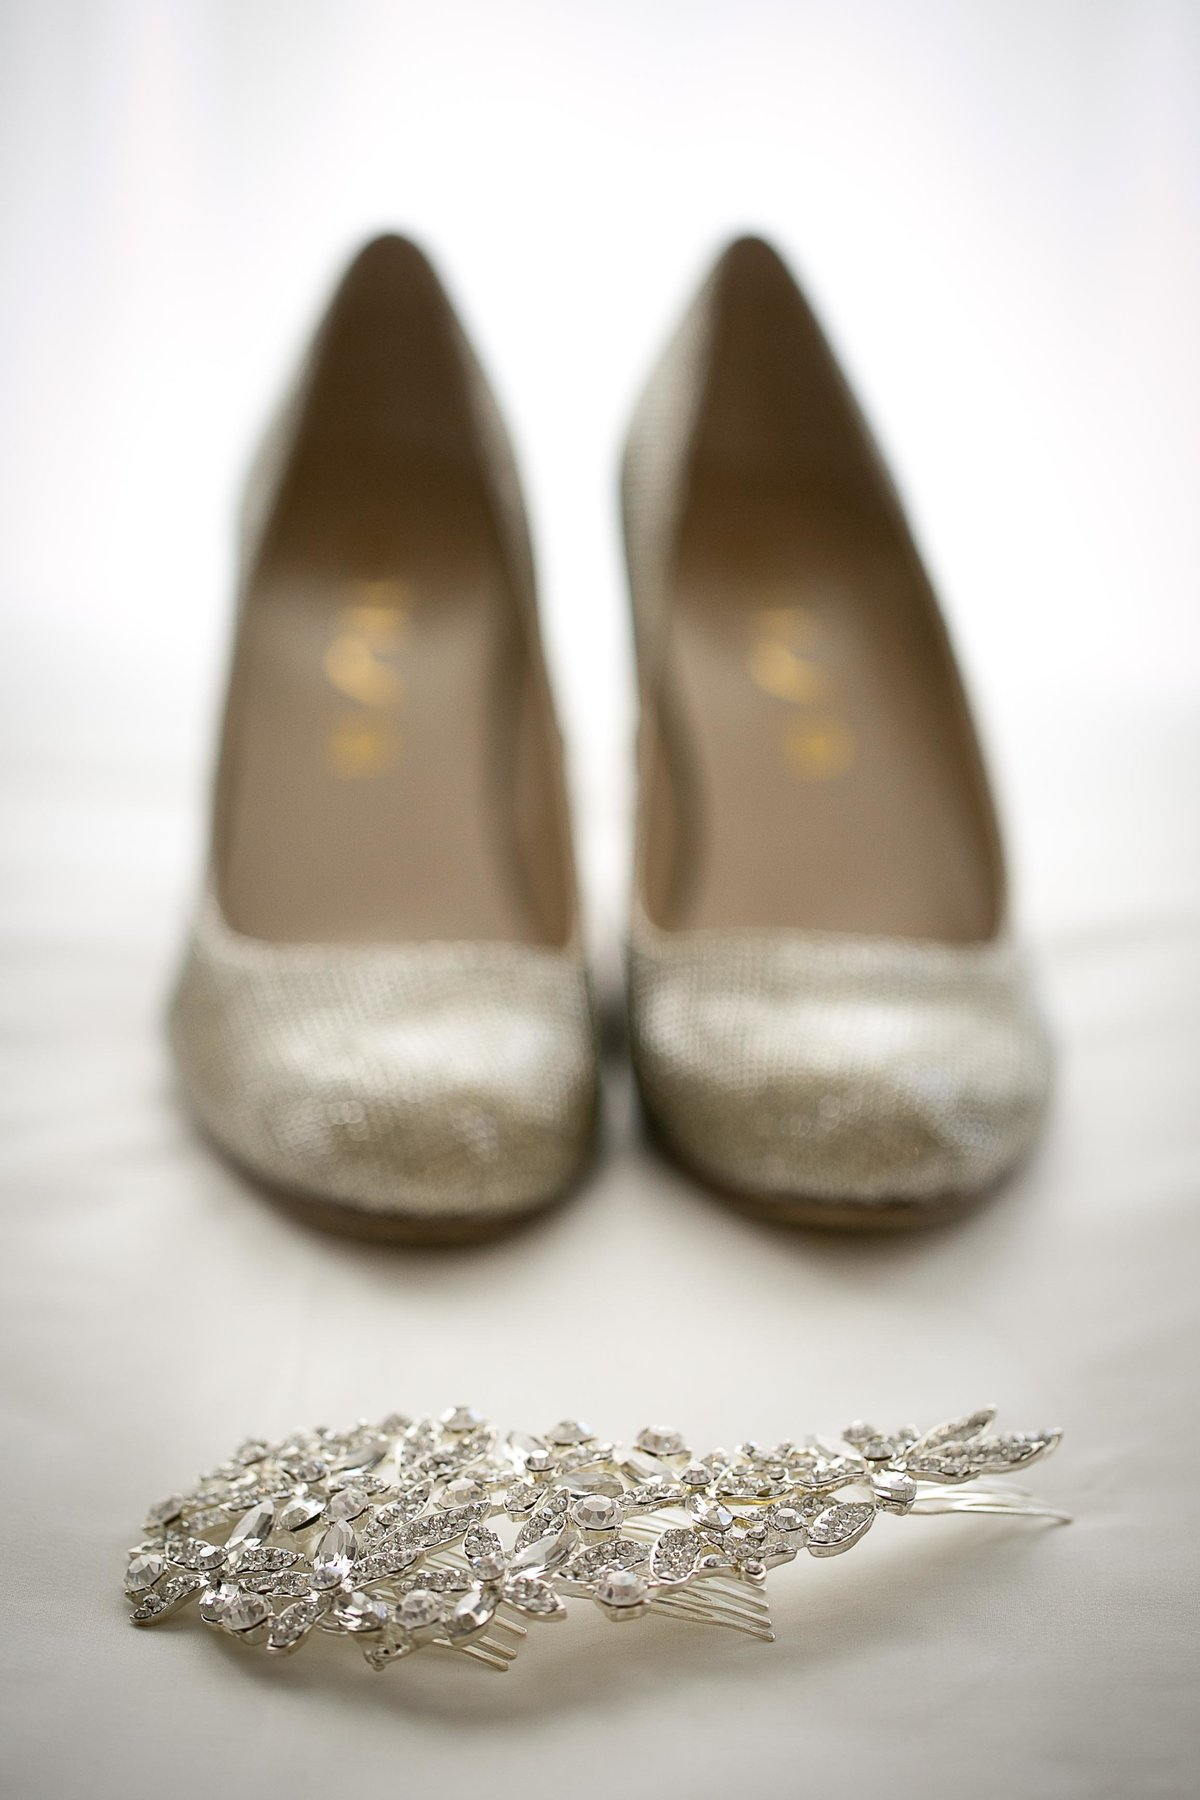 Prewedding photo ideas Shoes_